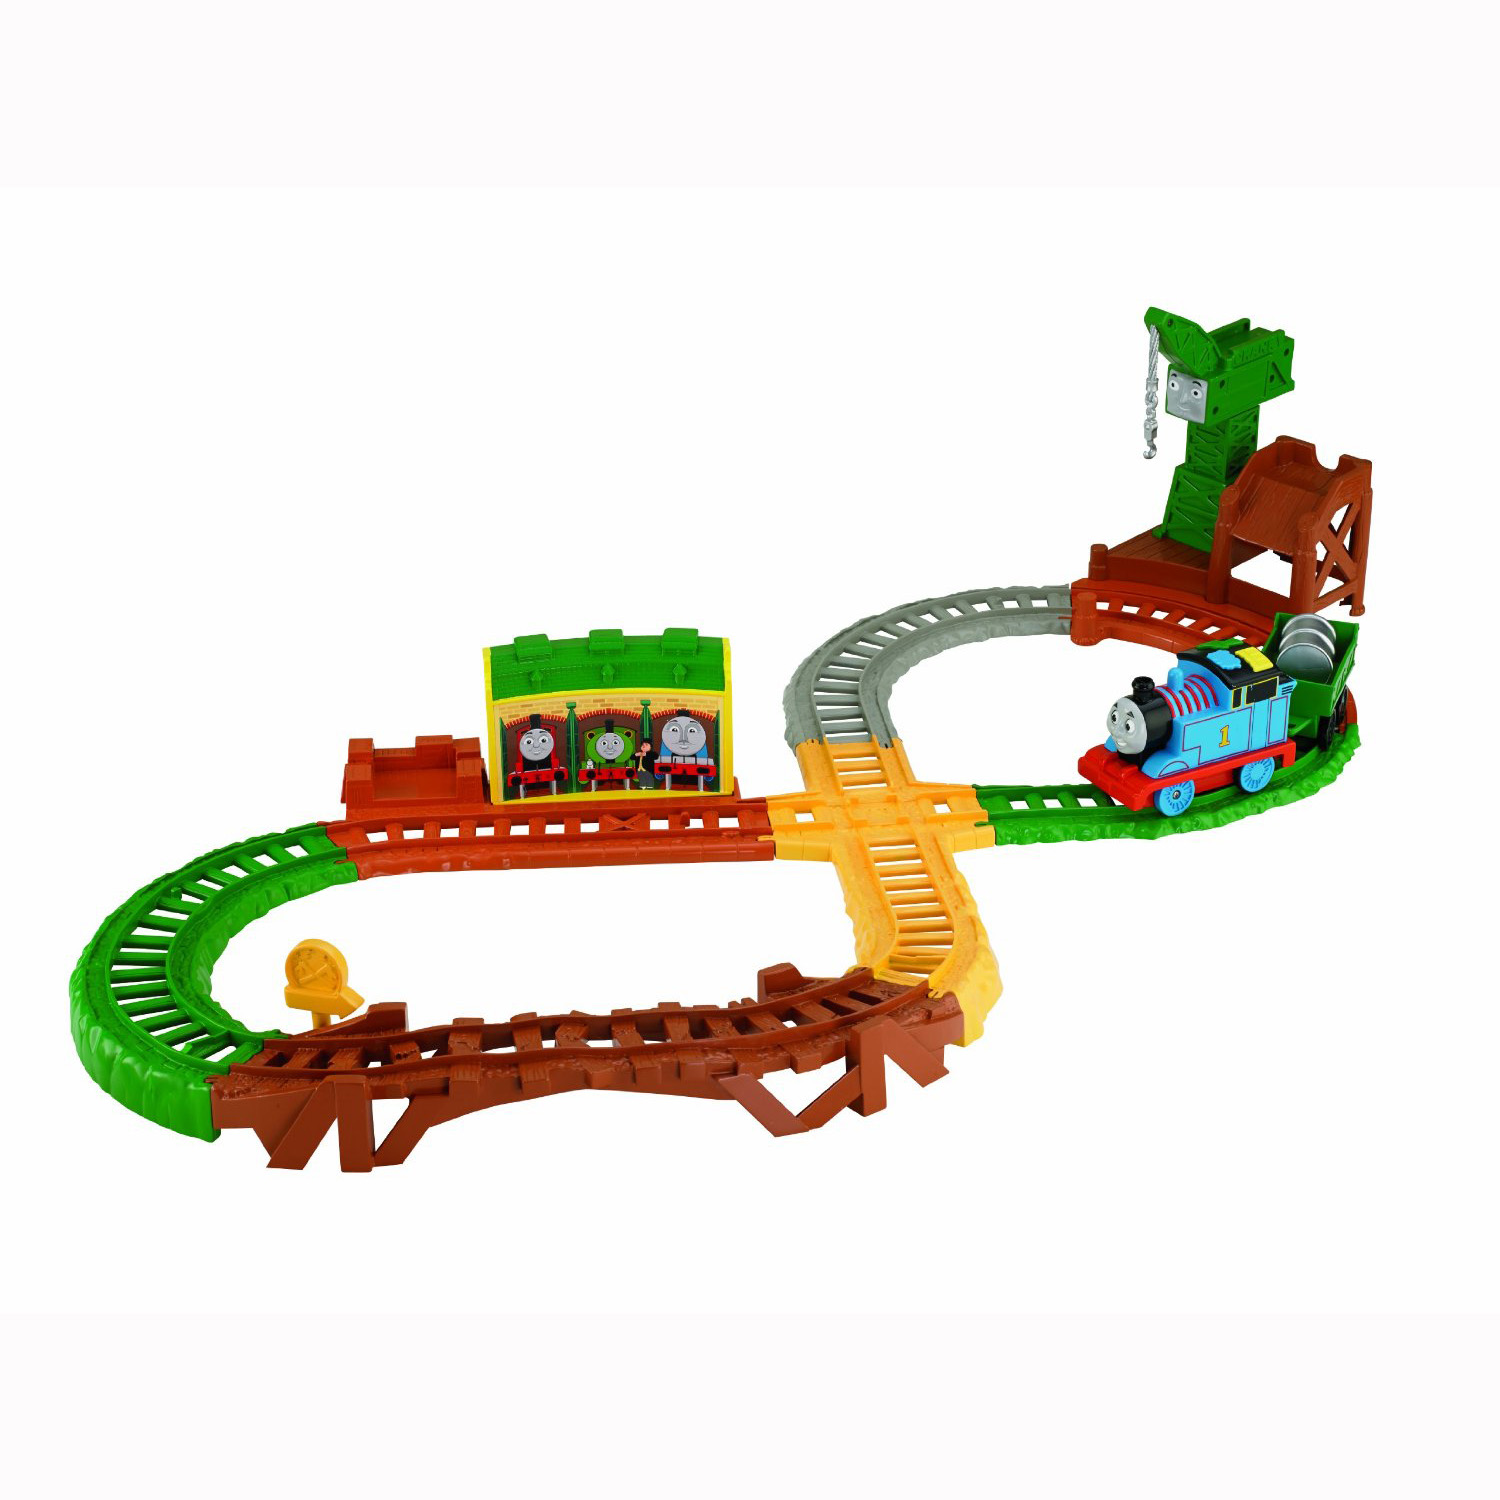 Toy Train Graphics : Thomas the train toys around track with play